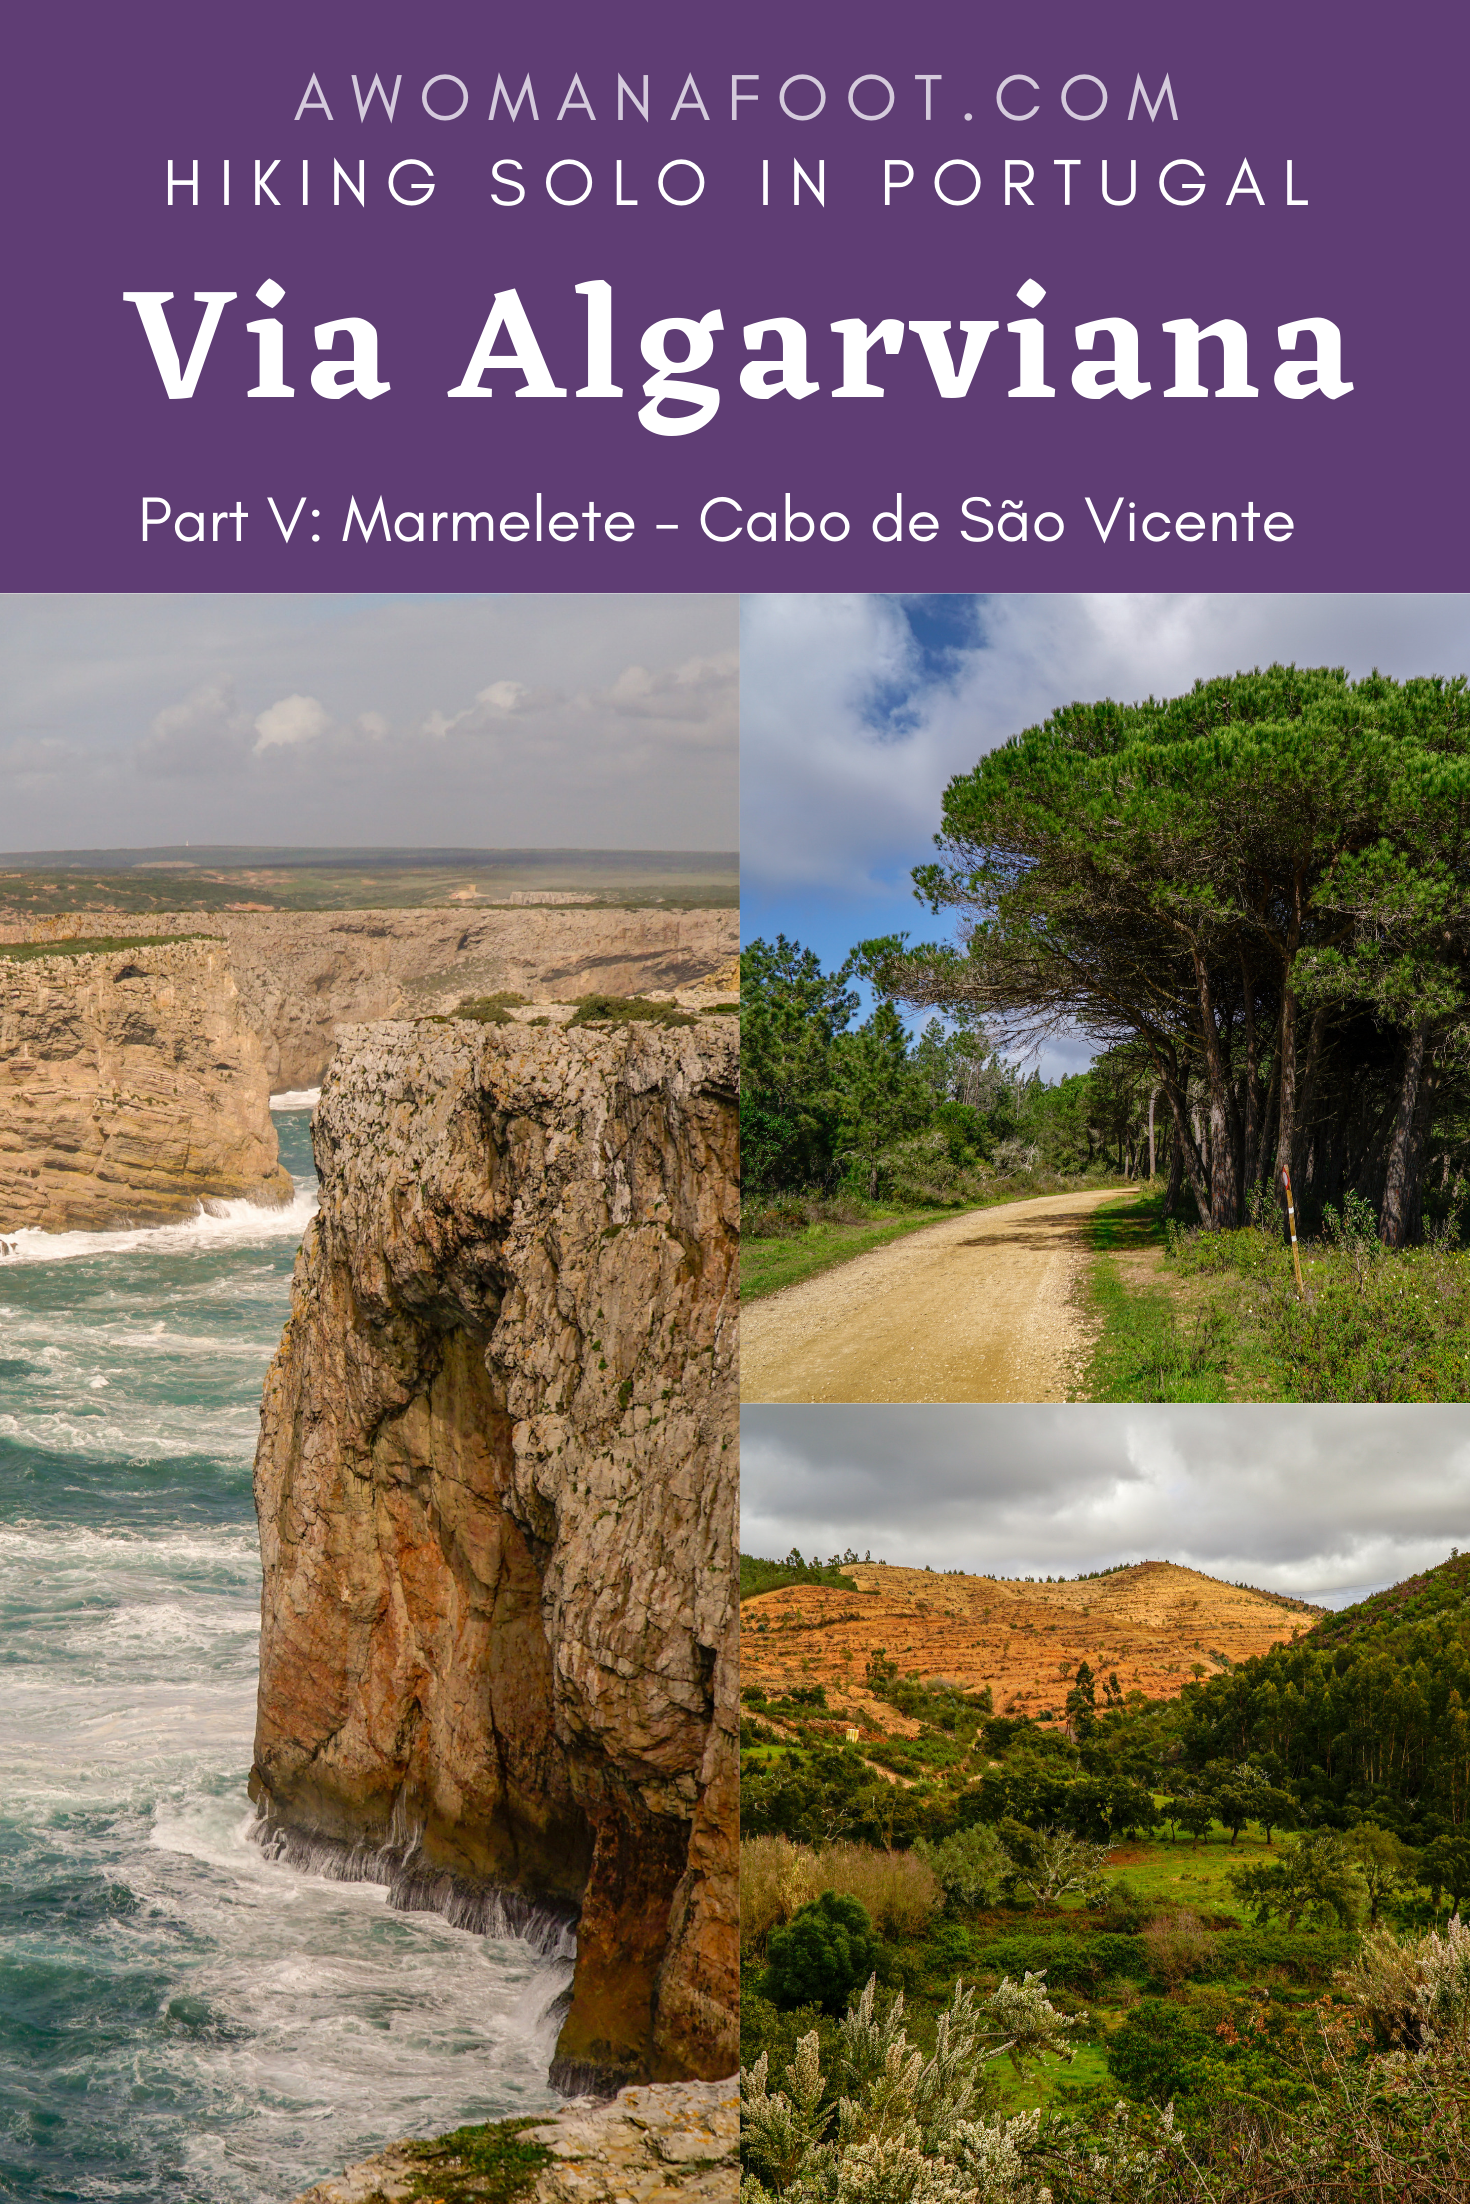 """The final section of the Via Algarviana trail - from Marmelete, through Bensafrim to the fantastic """"End of the World"""" at Cabo de São Vicente. Learn more about hiking solo this fabulous trail in southern Portugal @ AWOMANAFOOT.COM! Hiking trails in Europe 